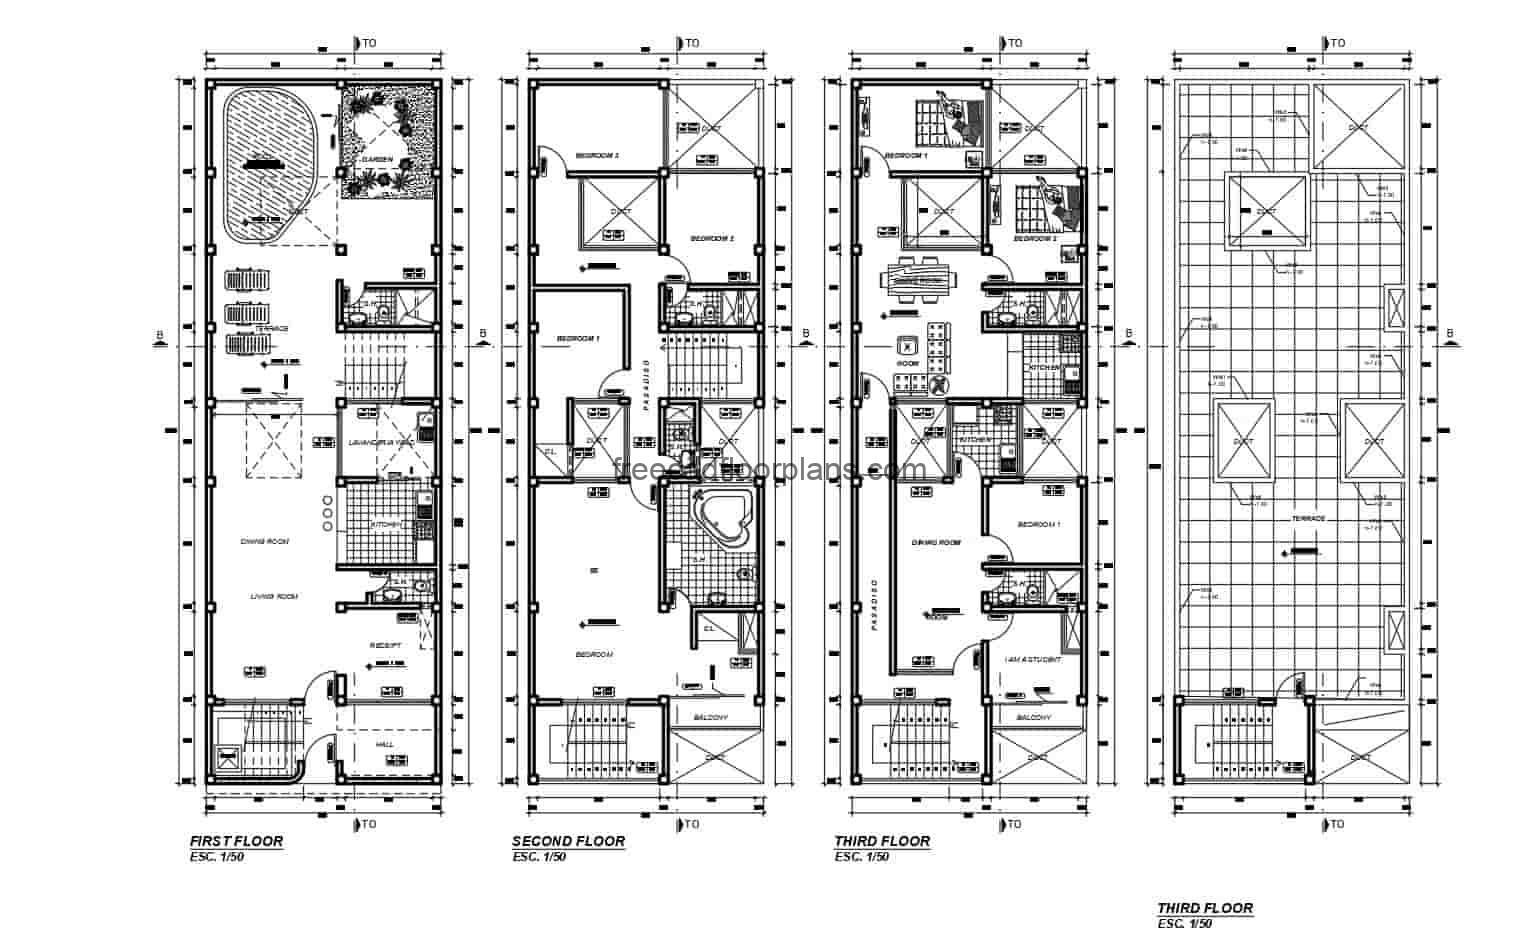 Architectural 2D plans and dimensioning of the residence of three levels in Autocad DWG format, the residence in the first floor has a social area with living room, kitchen, dining room, laundry area, garden and pool area. Second and third levels have six bedrooms in total and a common terrace area for the building. 2D blueprints for free download.